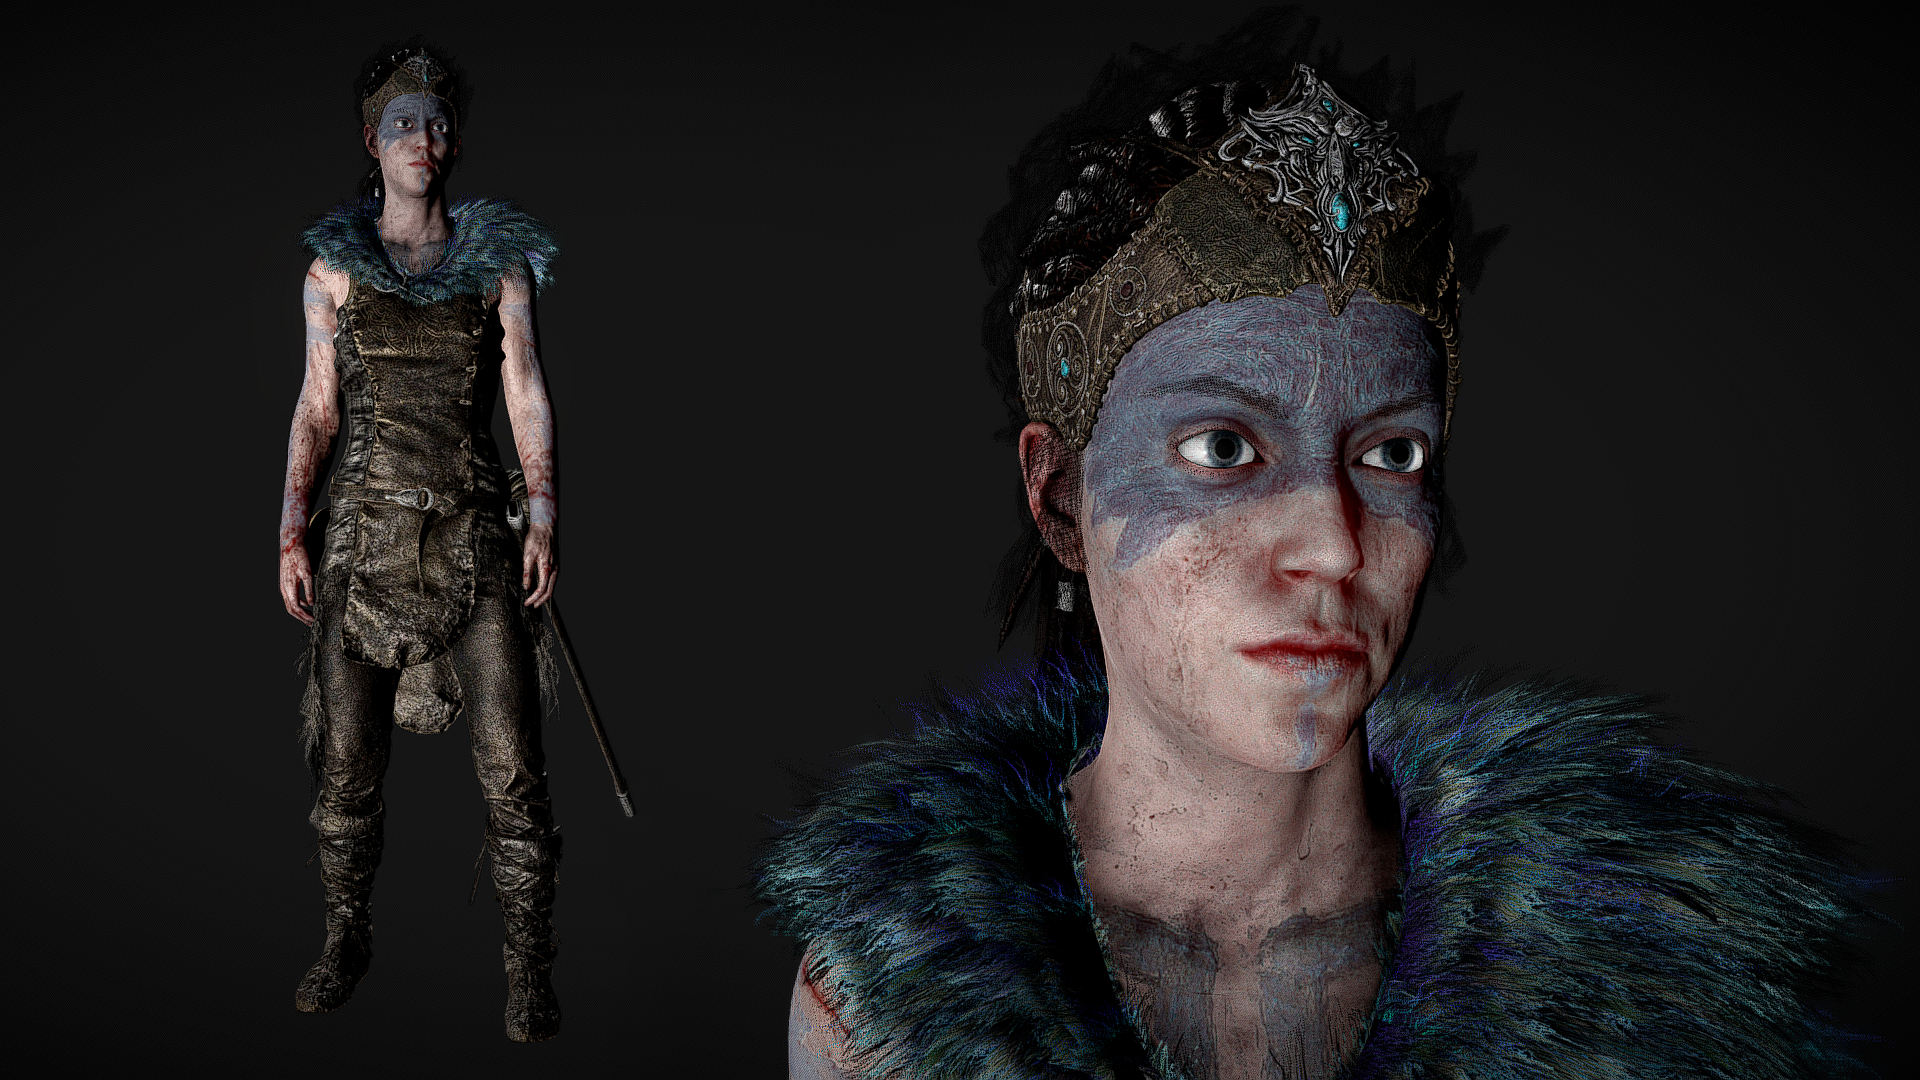 Senua from Hellblade: Senua's Sacrifice